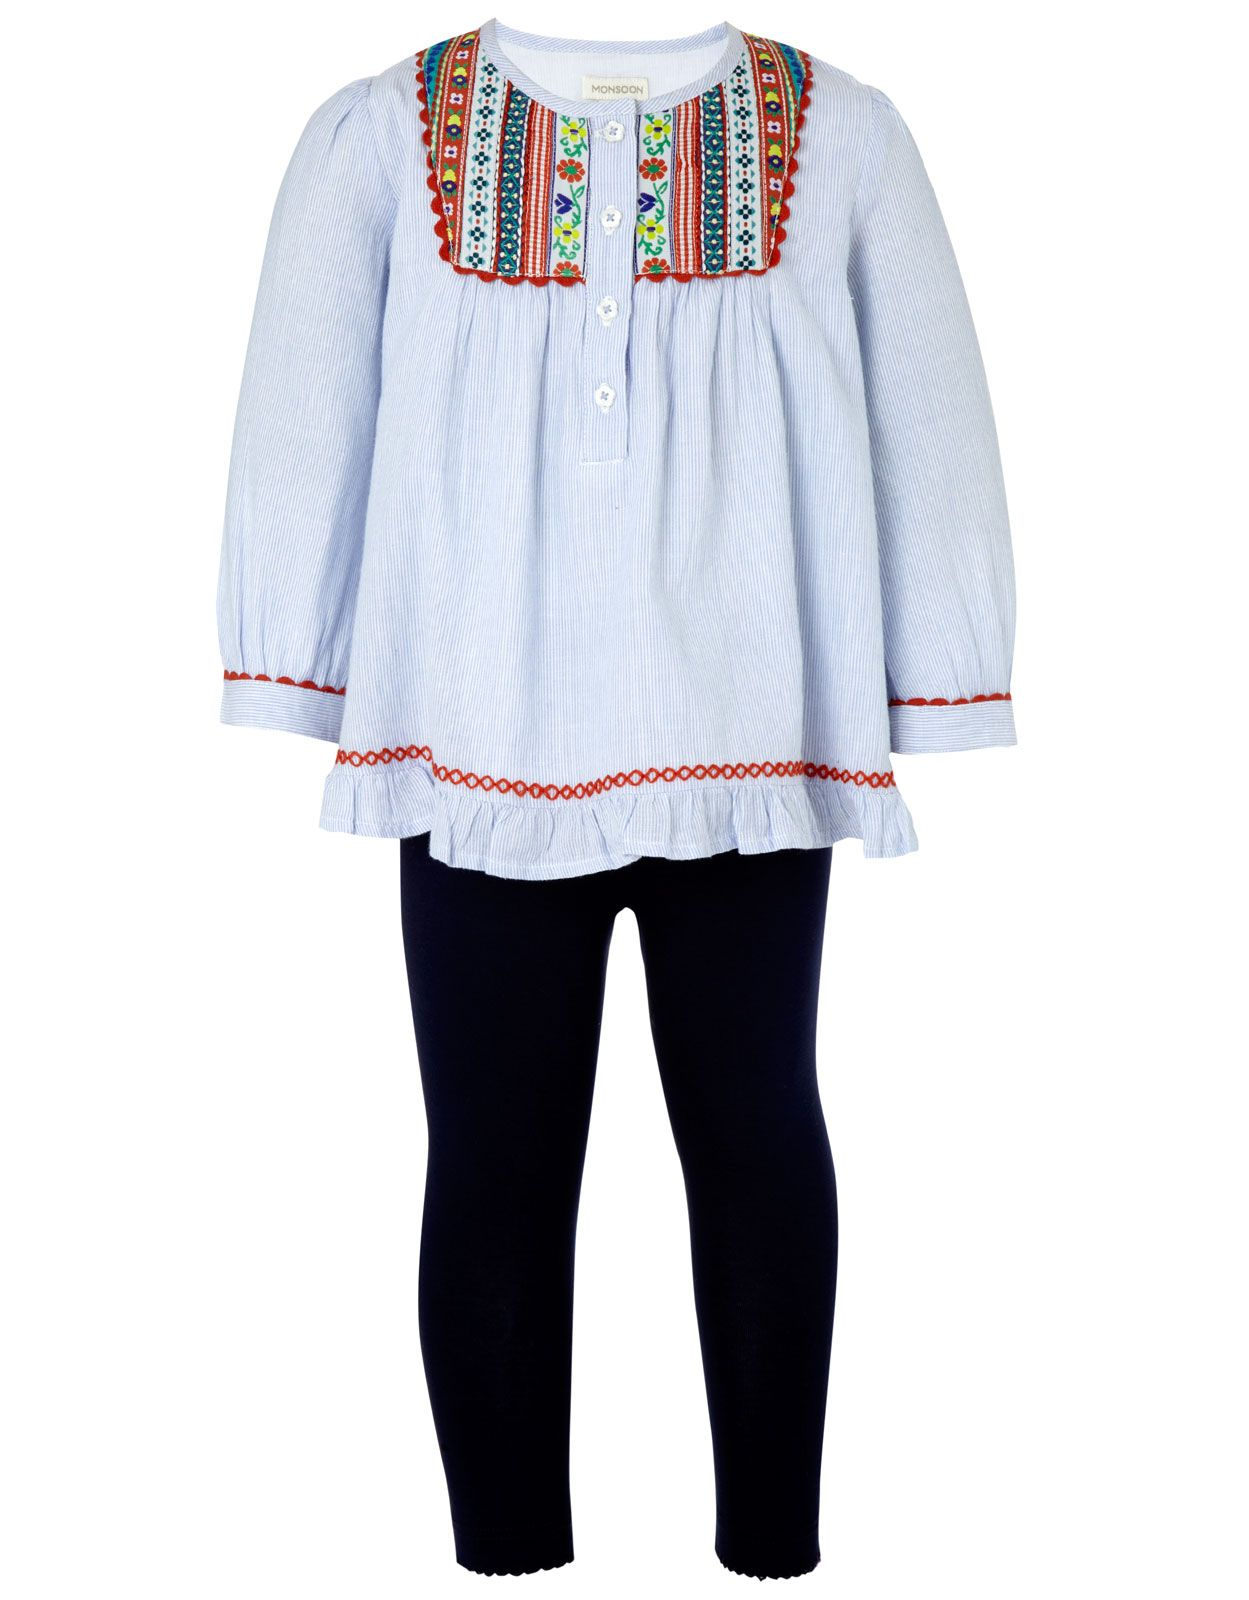 b8de1b26c Baby Embroidered Top And Legging Set